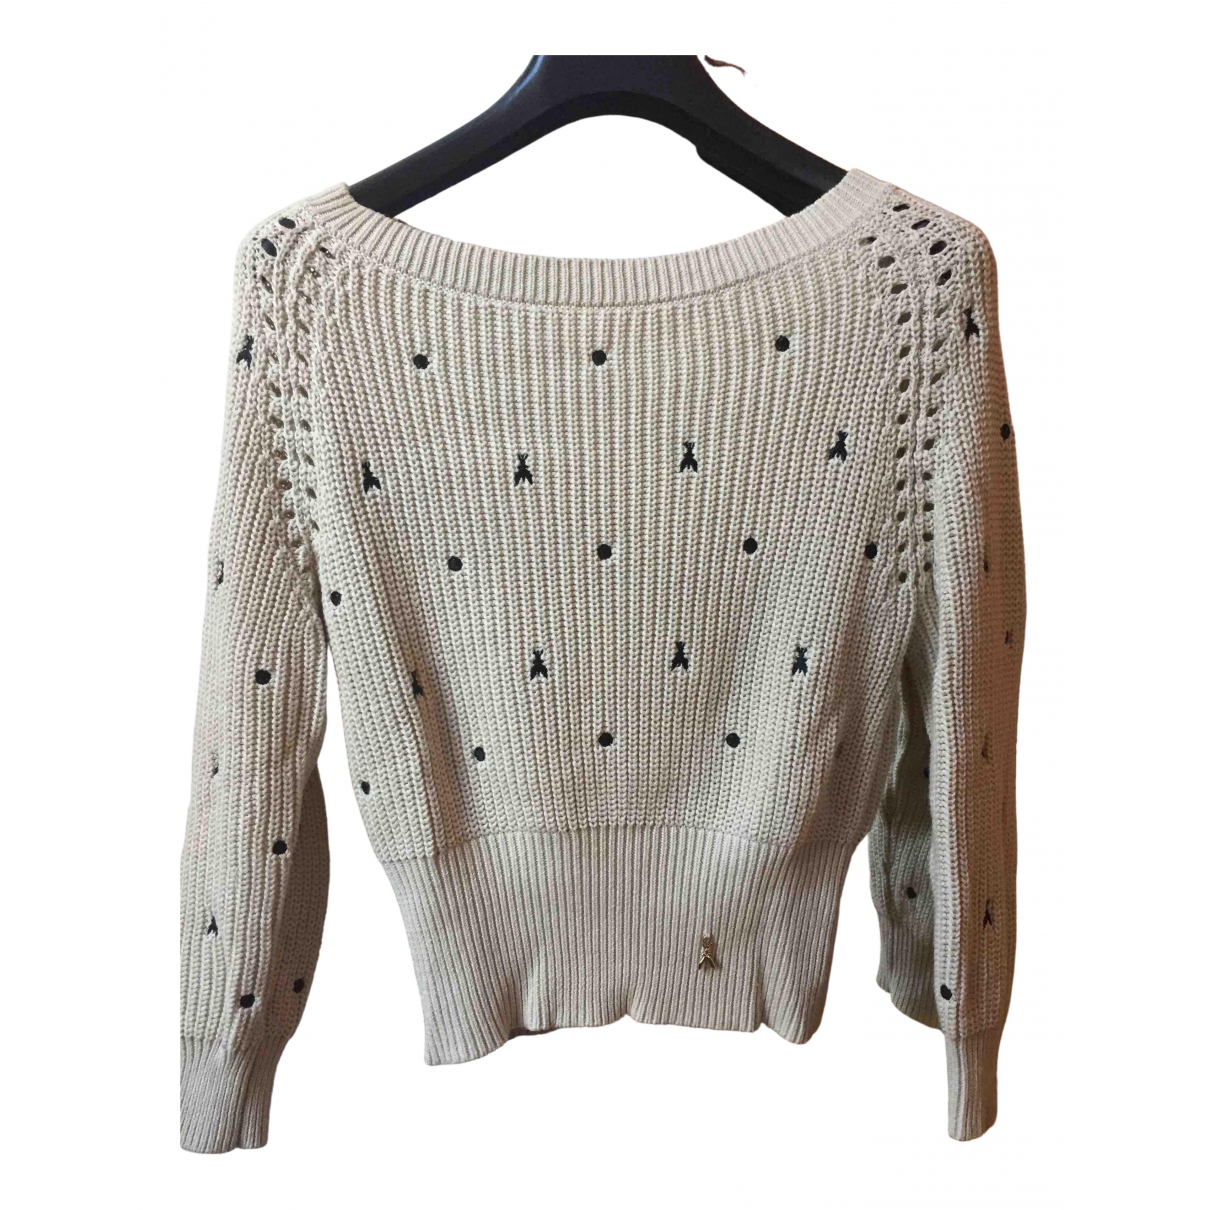 Patrizia Pepe \N Beige Cotton Knitwear for Women 0 0-5